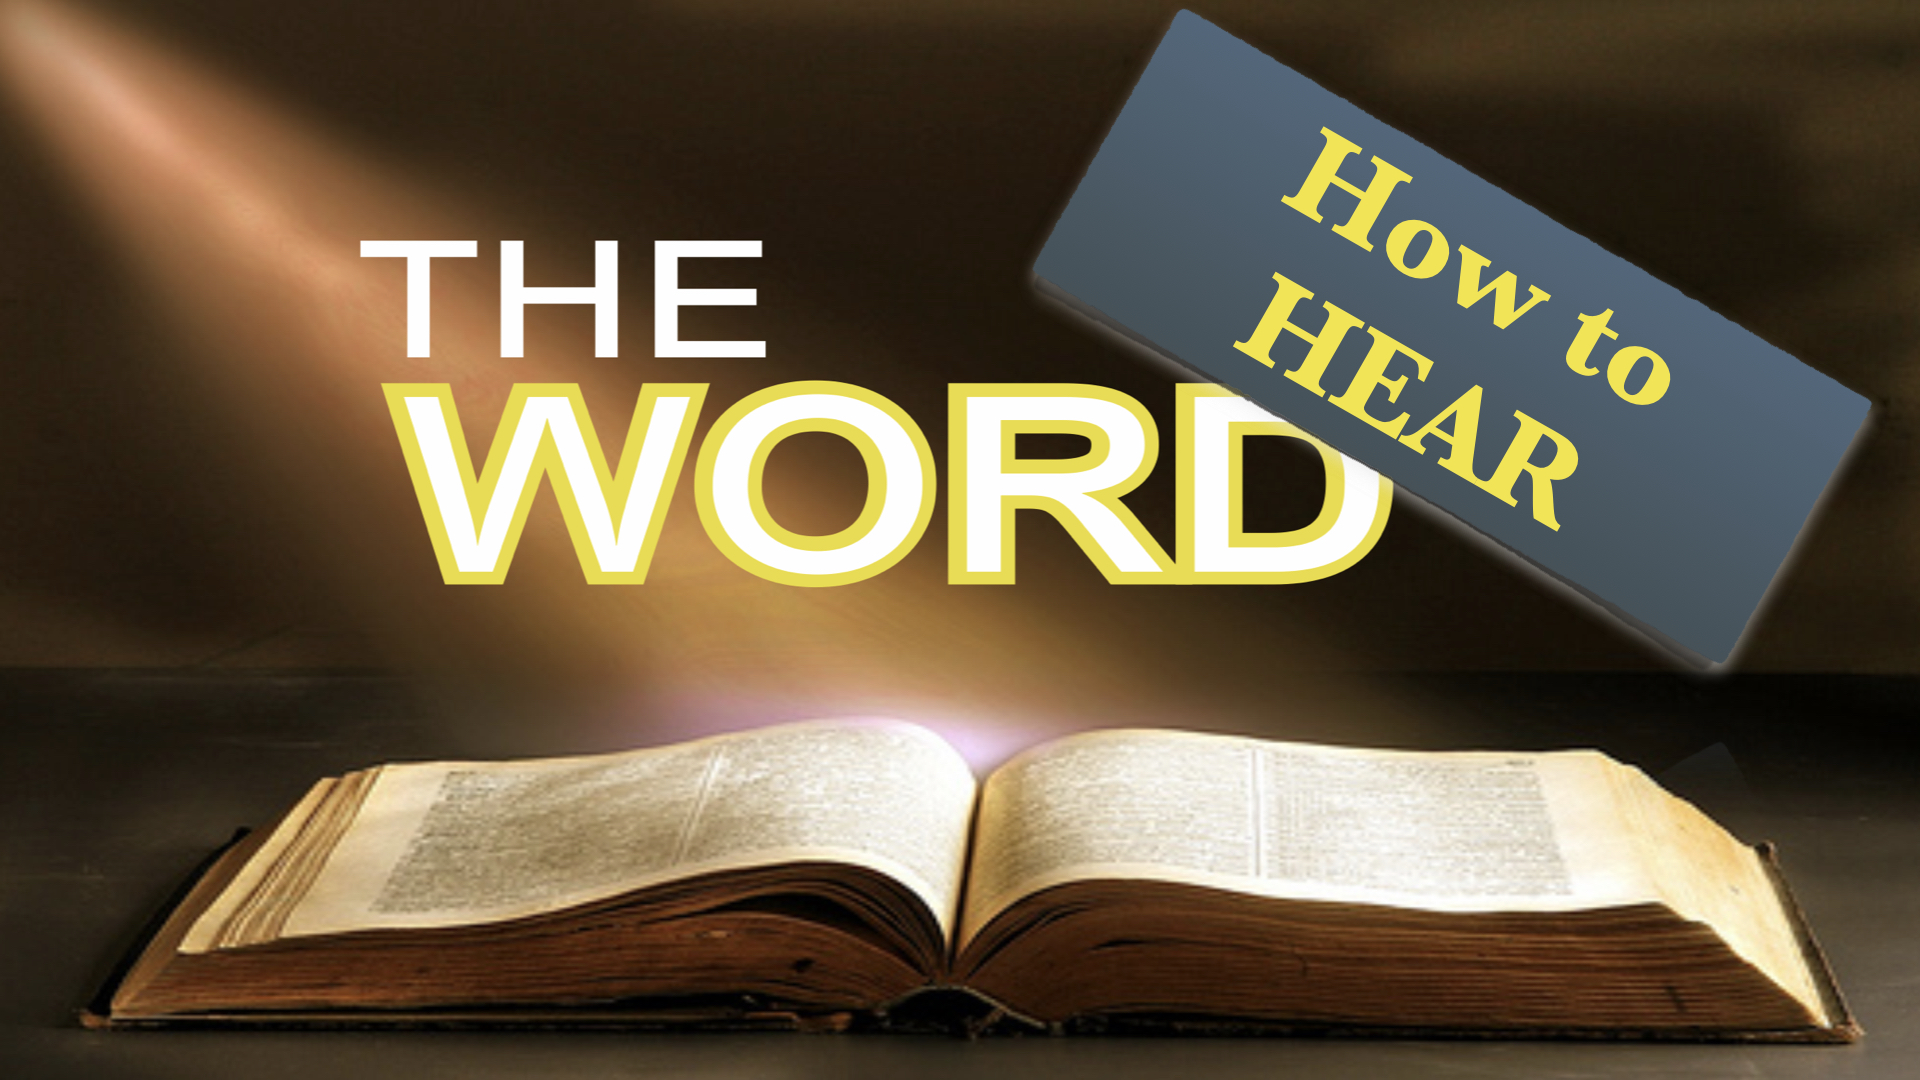 How to Hear The Word  782018 83736 AM